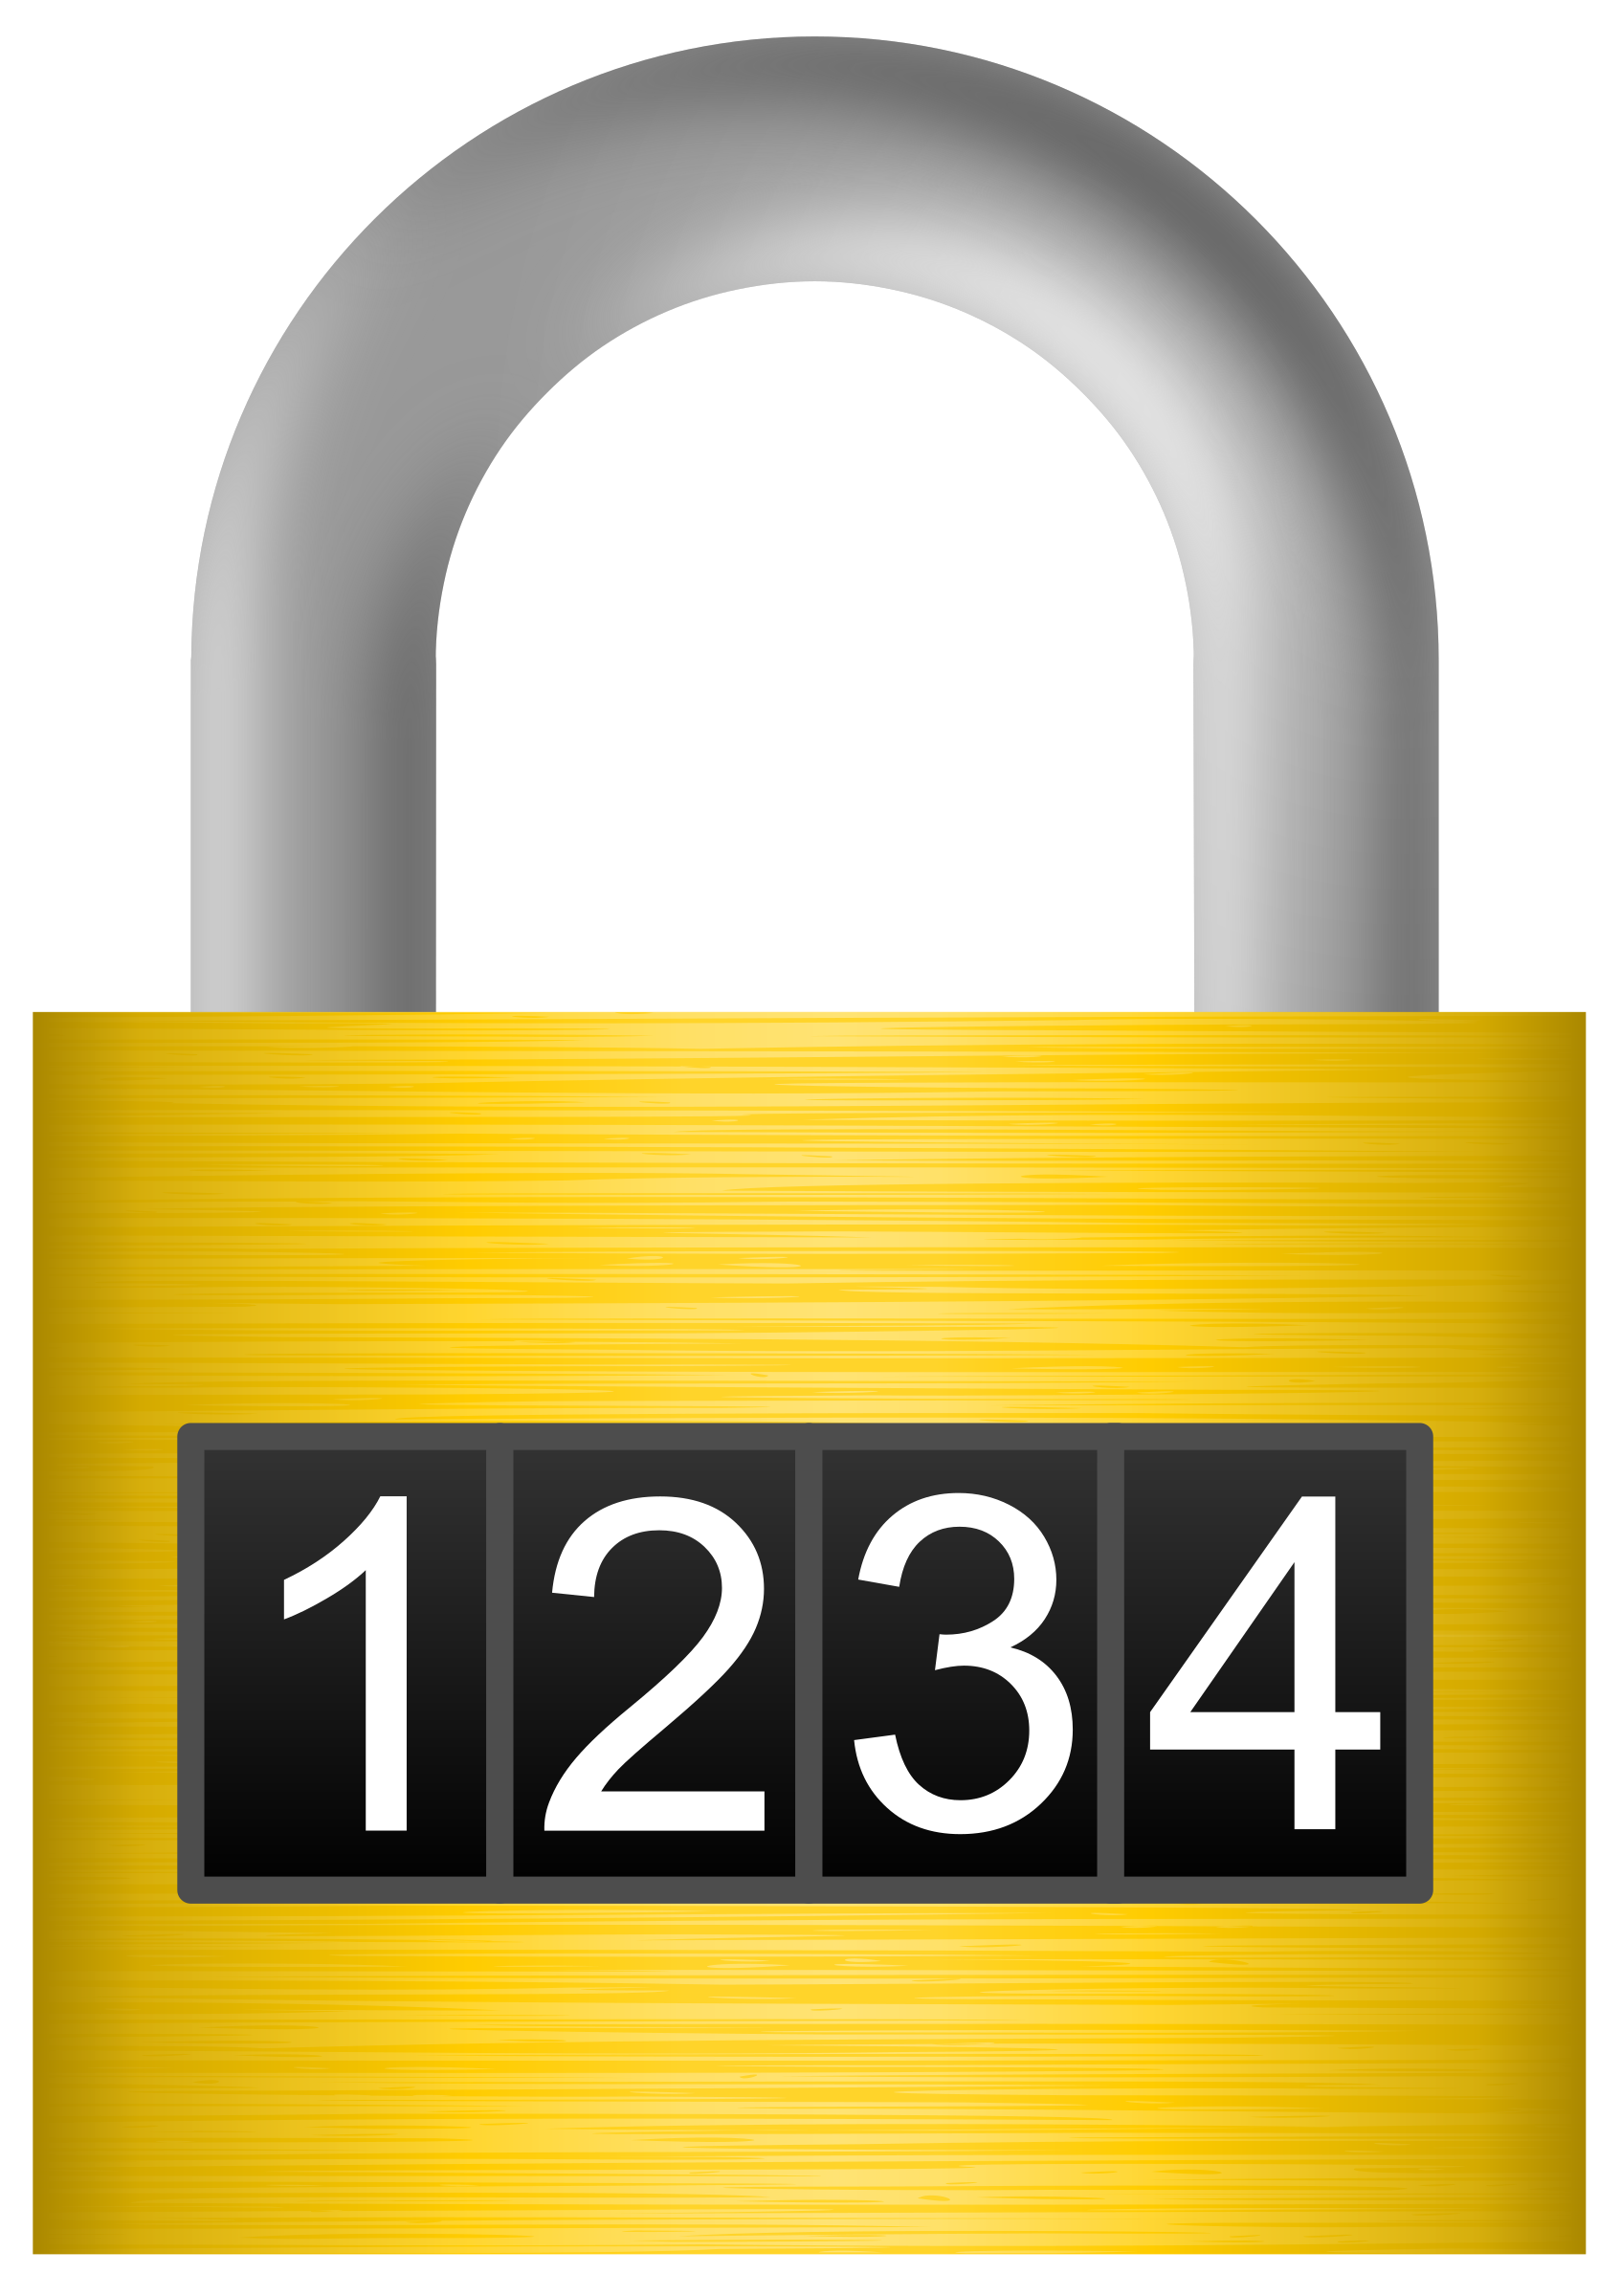 Lock clipart combo lock. Combination big image png